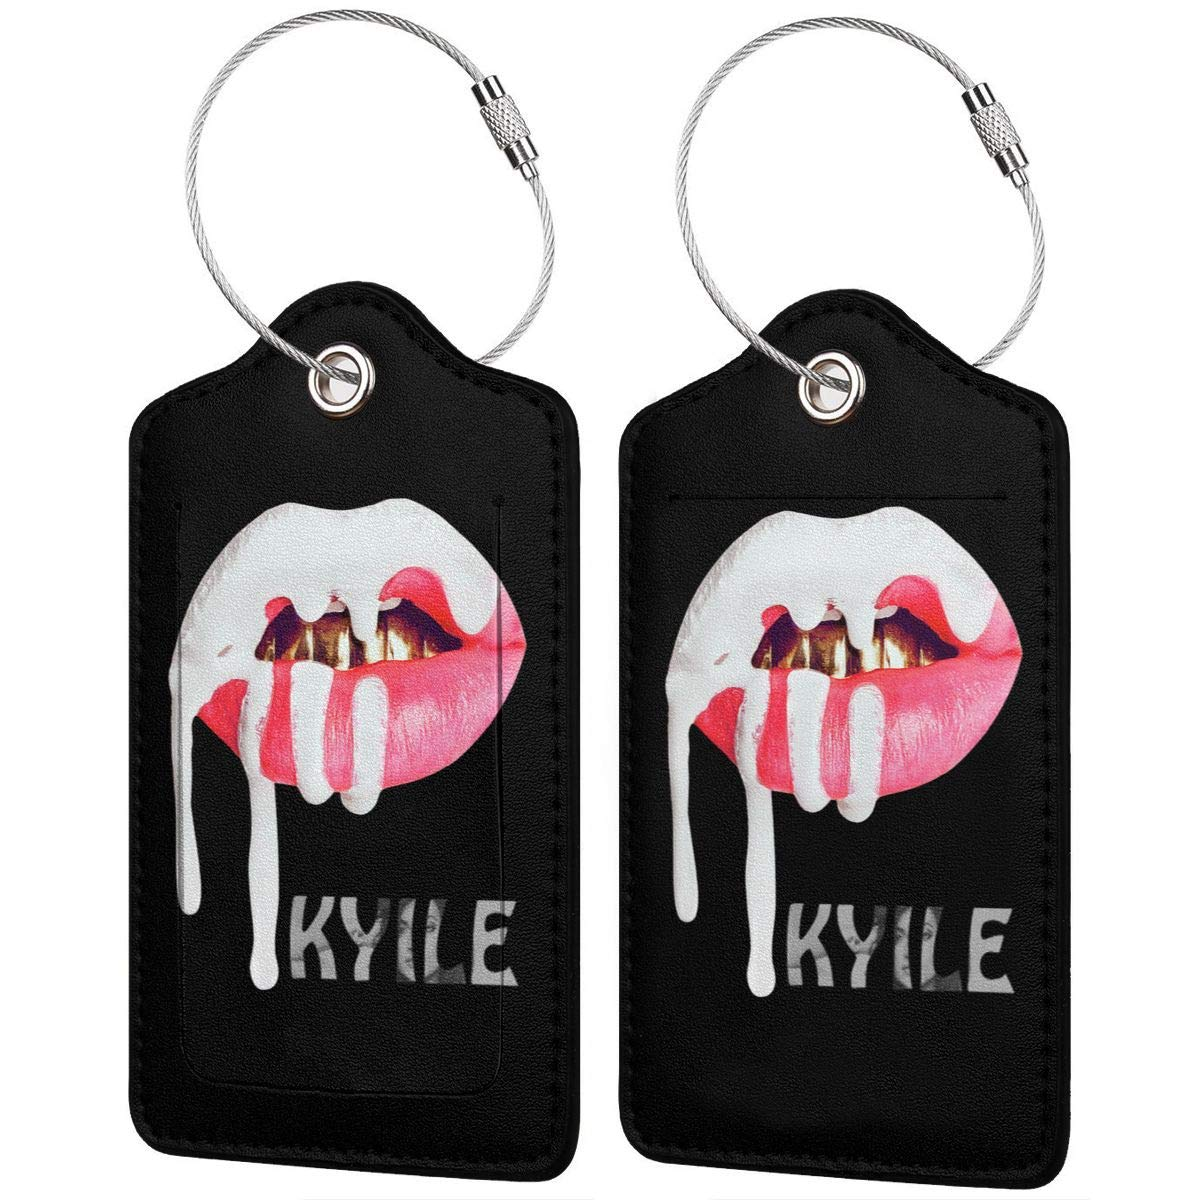 Kylie Jenner Leather Luggage Tag Travel ID Label For Baggage Suitcase